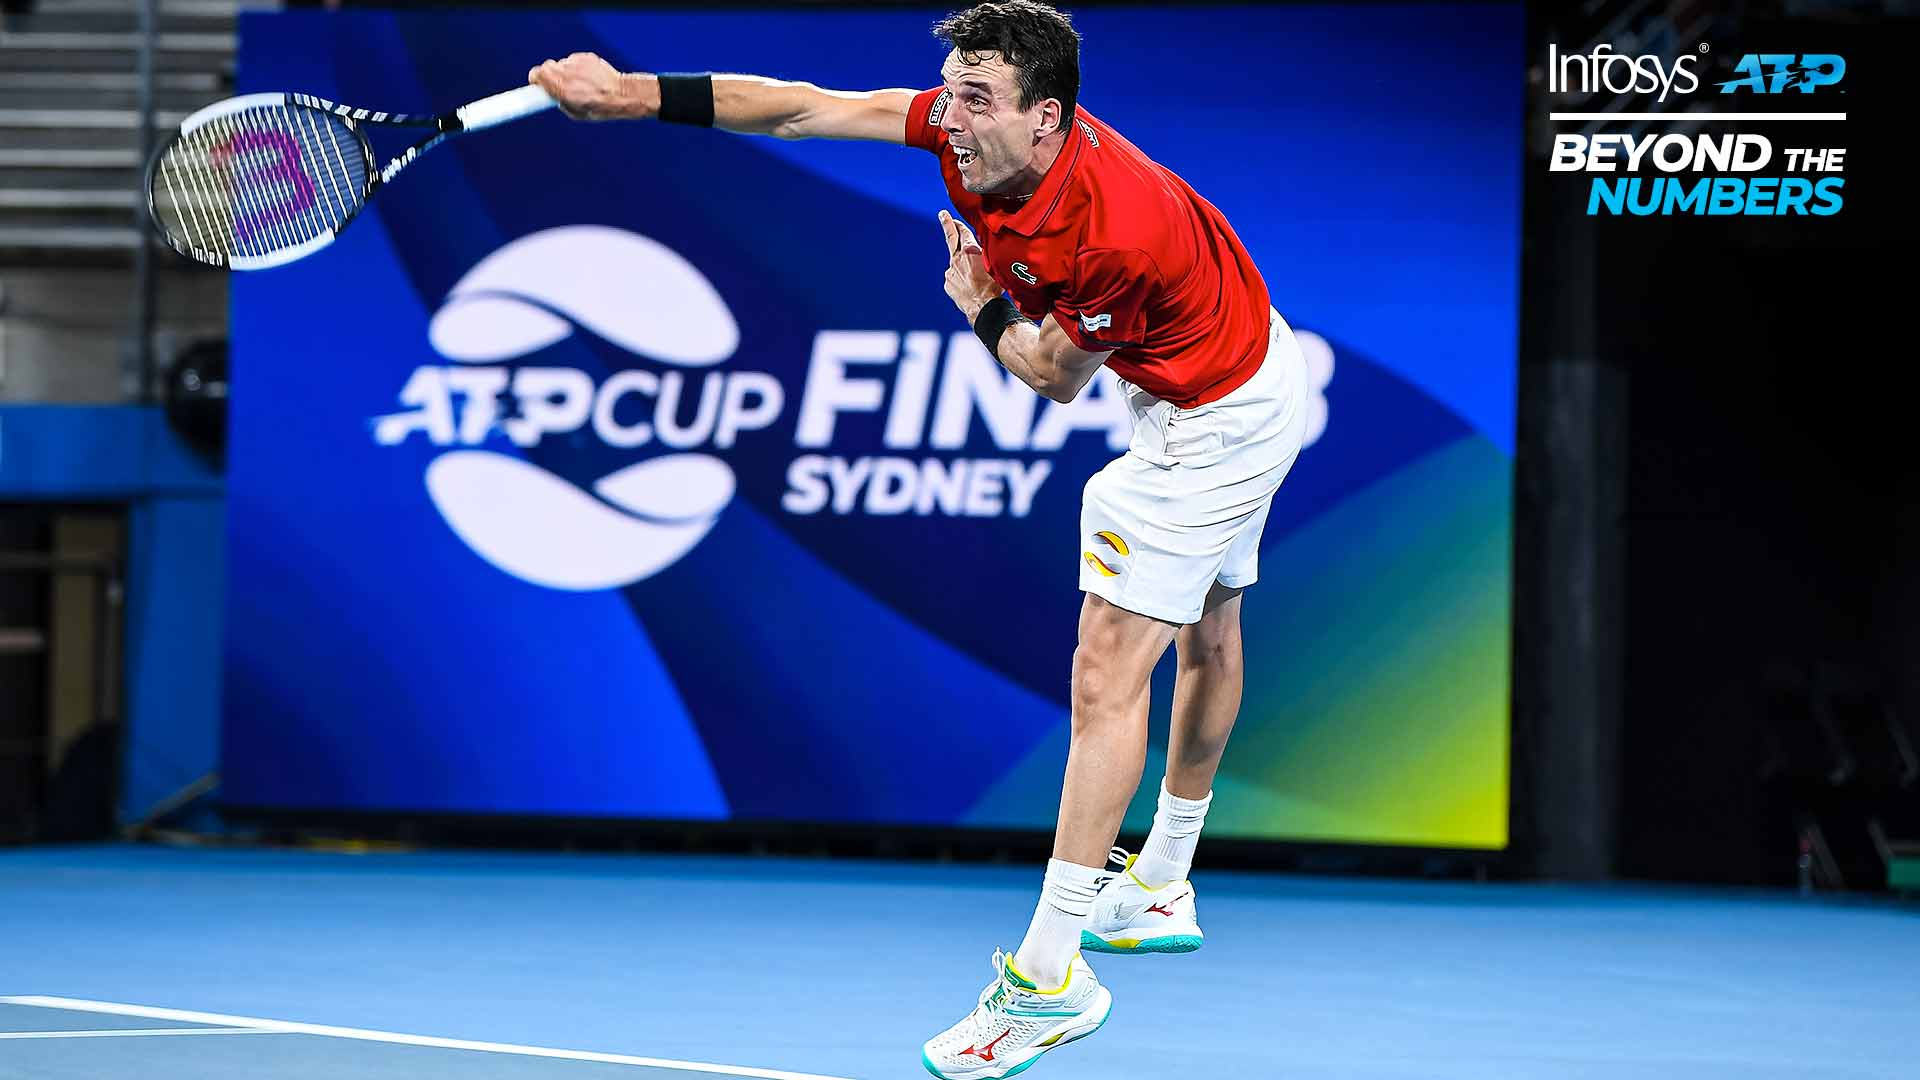 Roberto Bautista Agut's second-serve success helped Spain reach the ATP Cup final in Sydney last month.